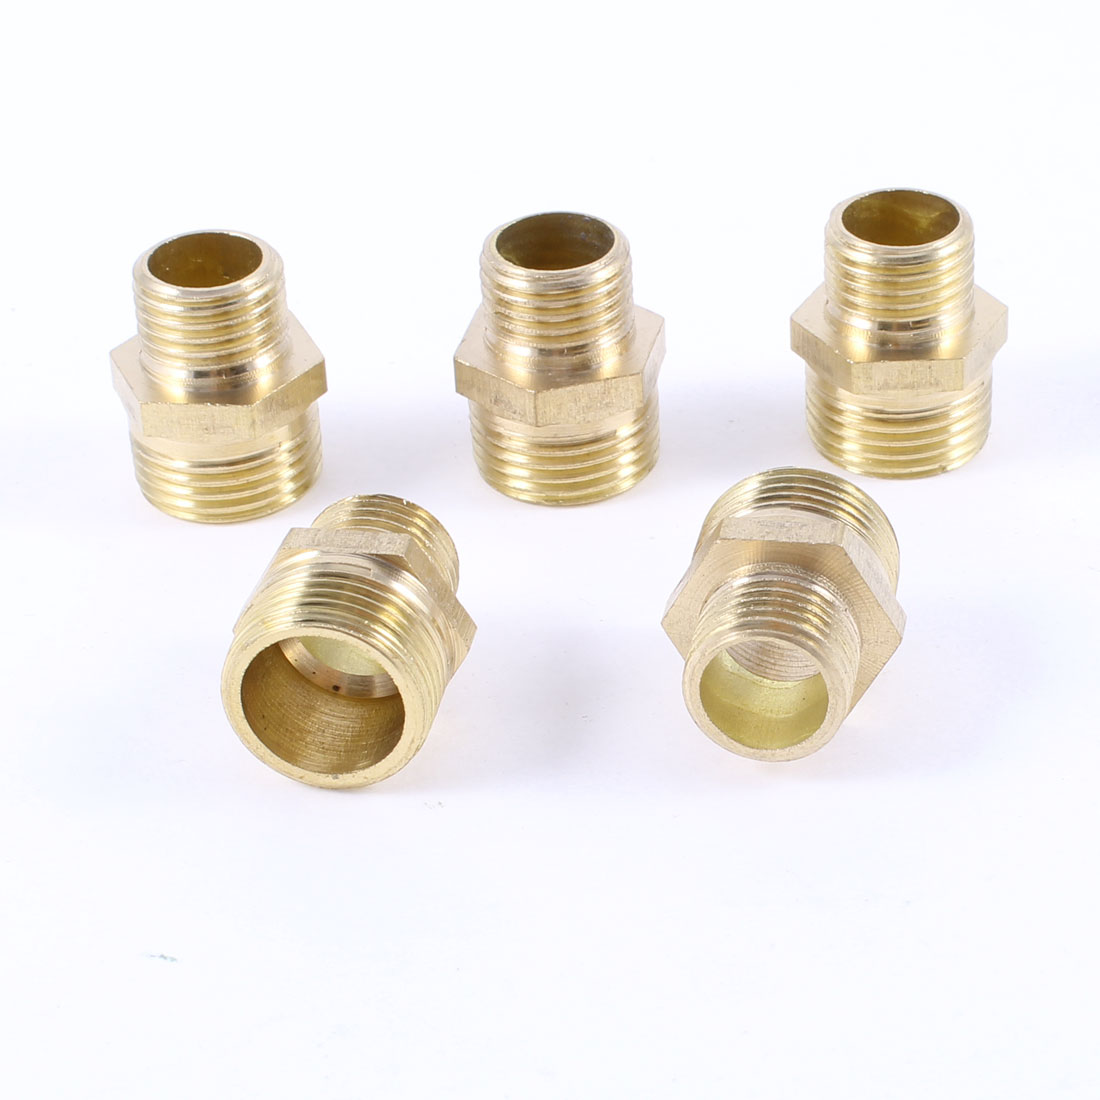 "Male to Male Thread 1/4""PT x 3/8""PT Brass Hex Nipple Quick Fittings 5 Pcs"